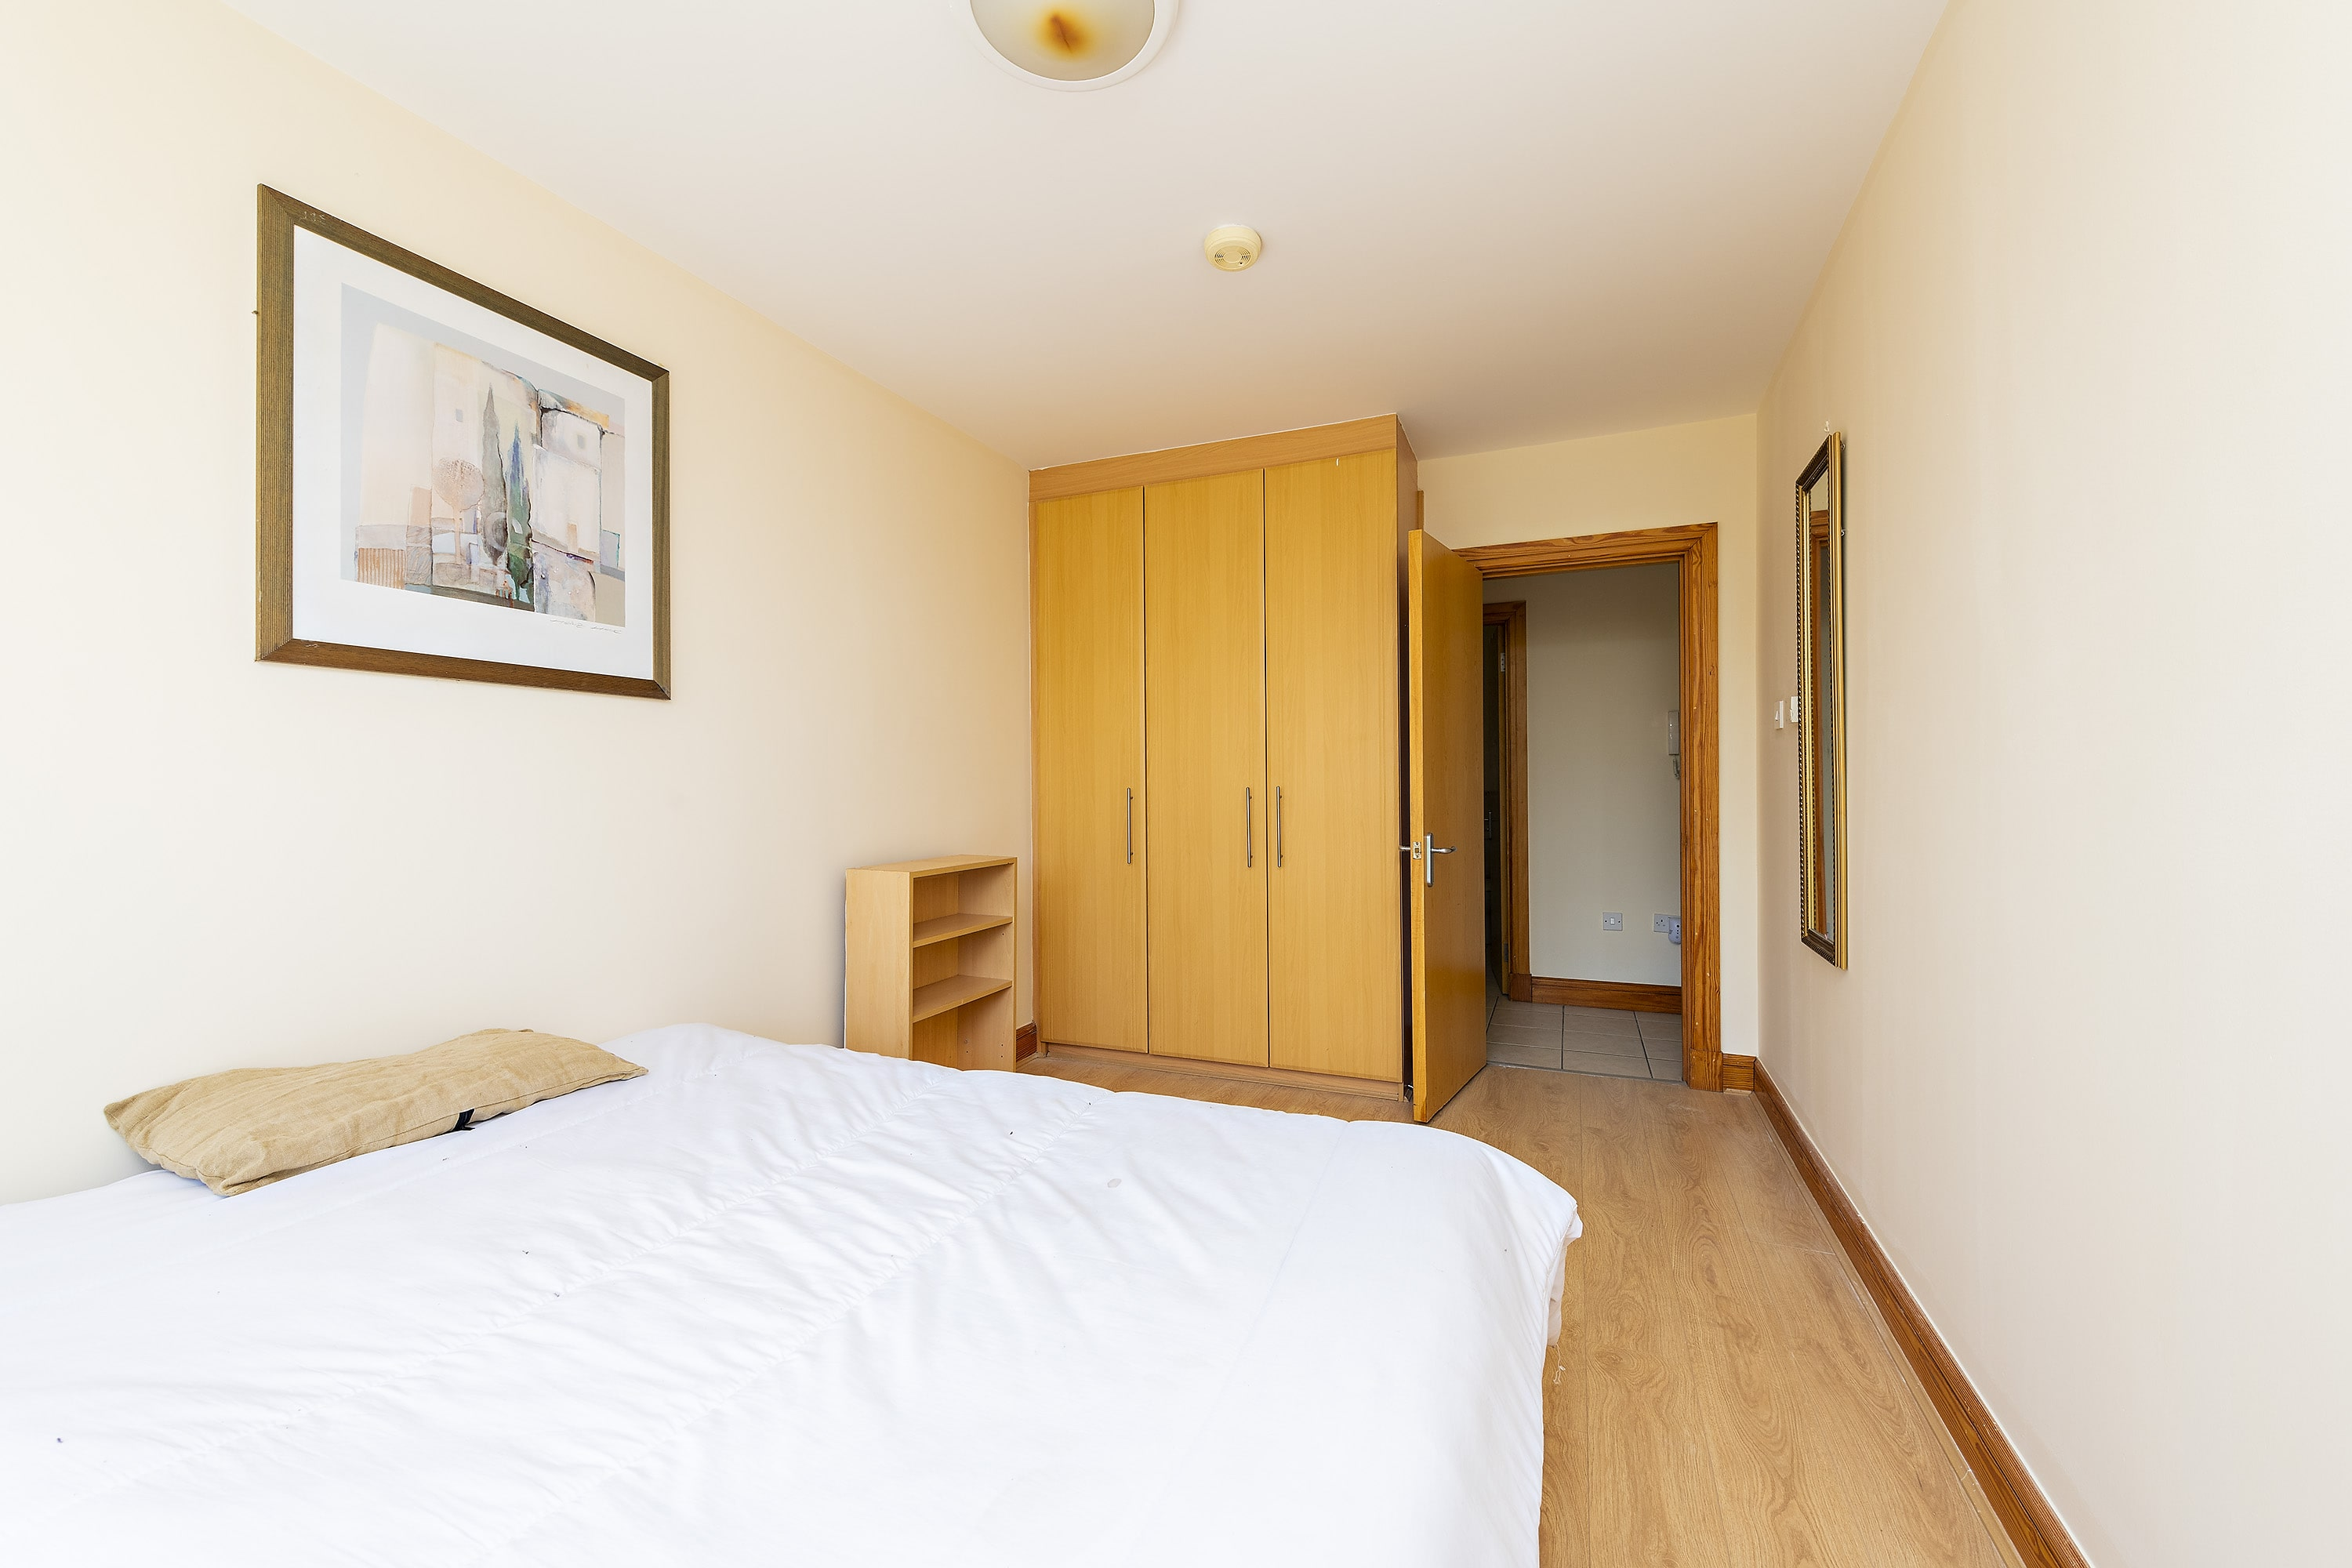 Apartment 25 Friarsland for sale by Just Property